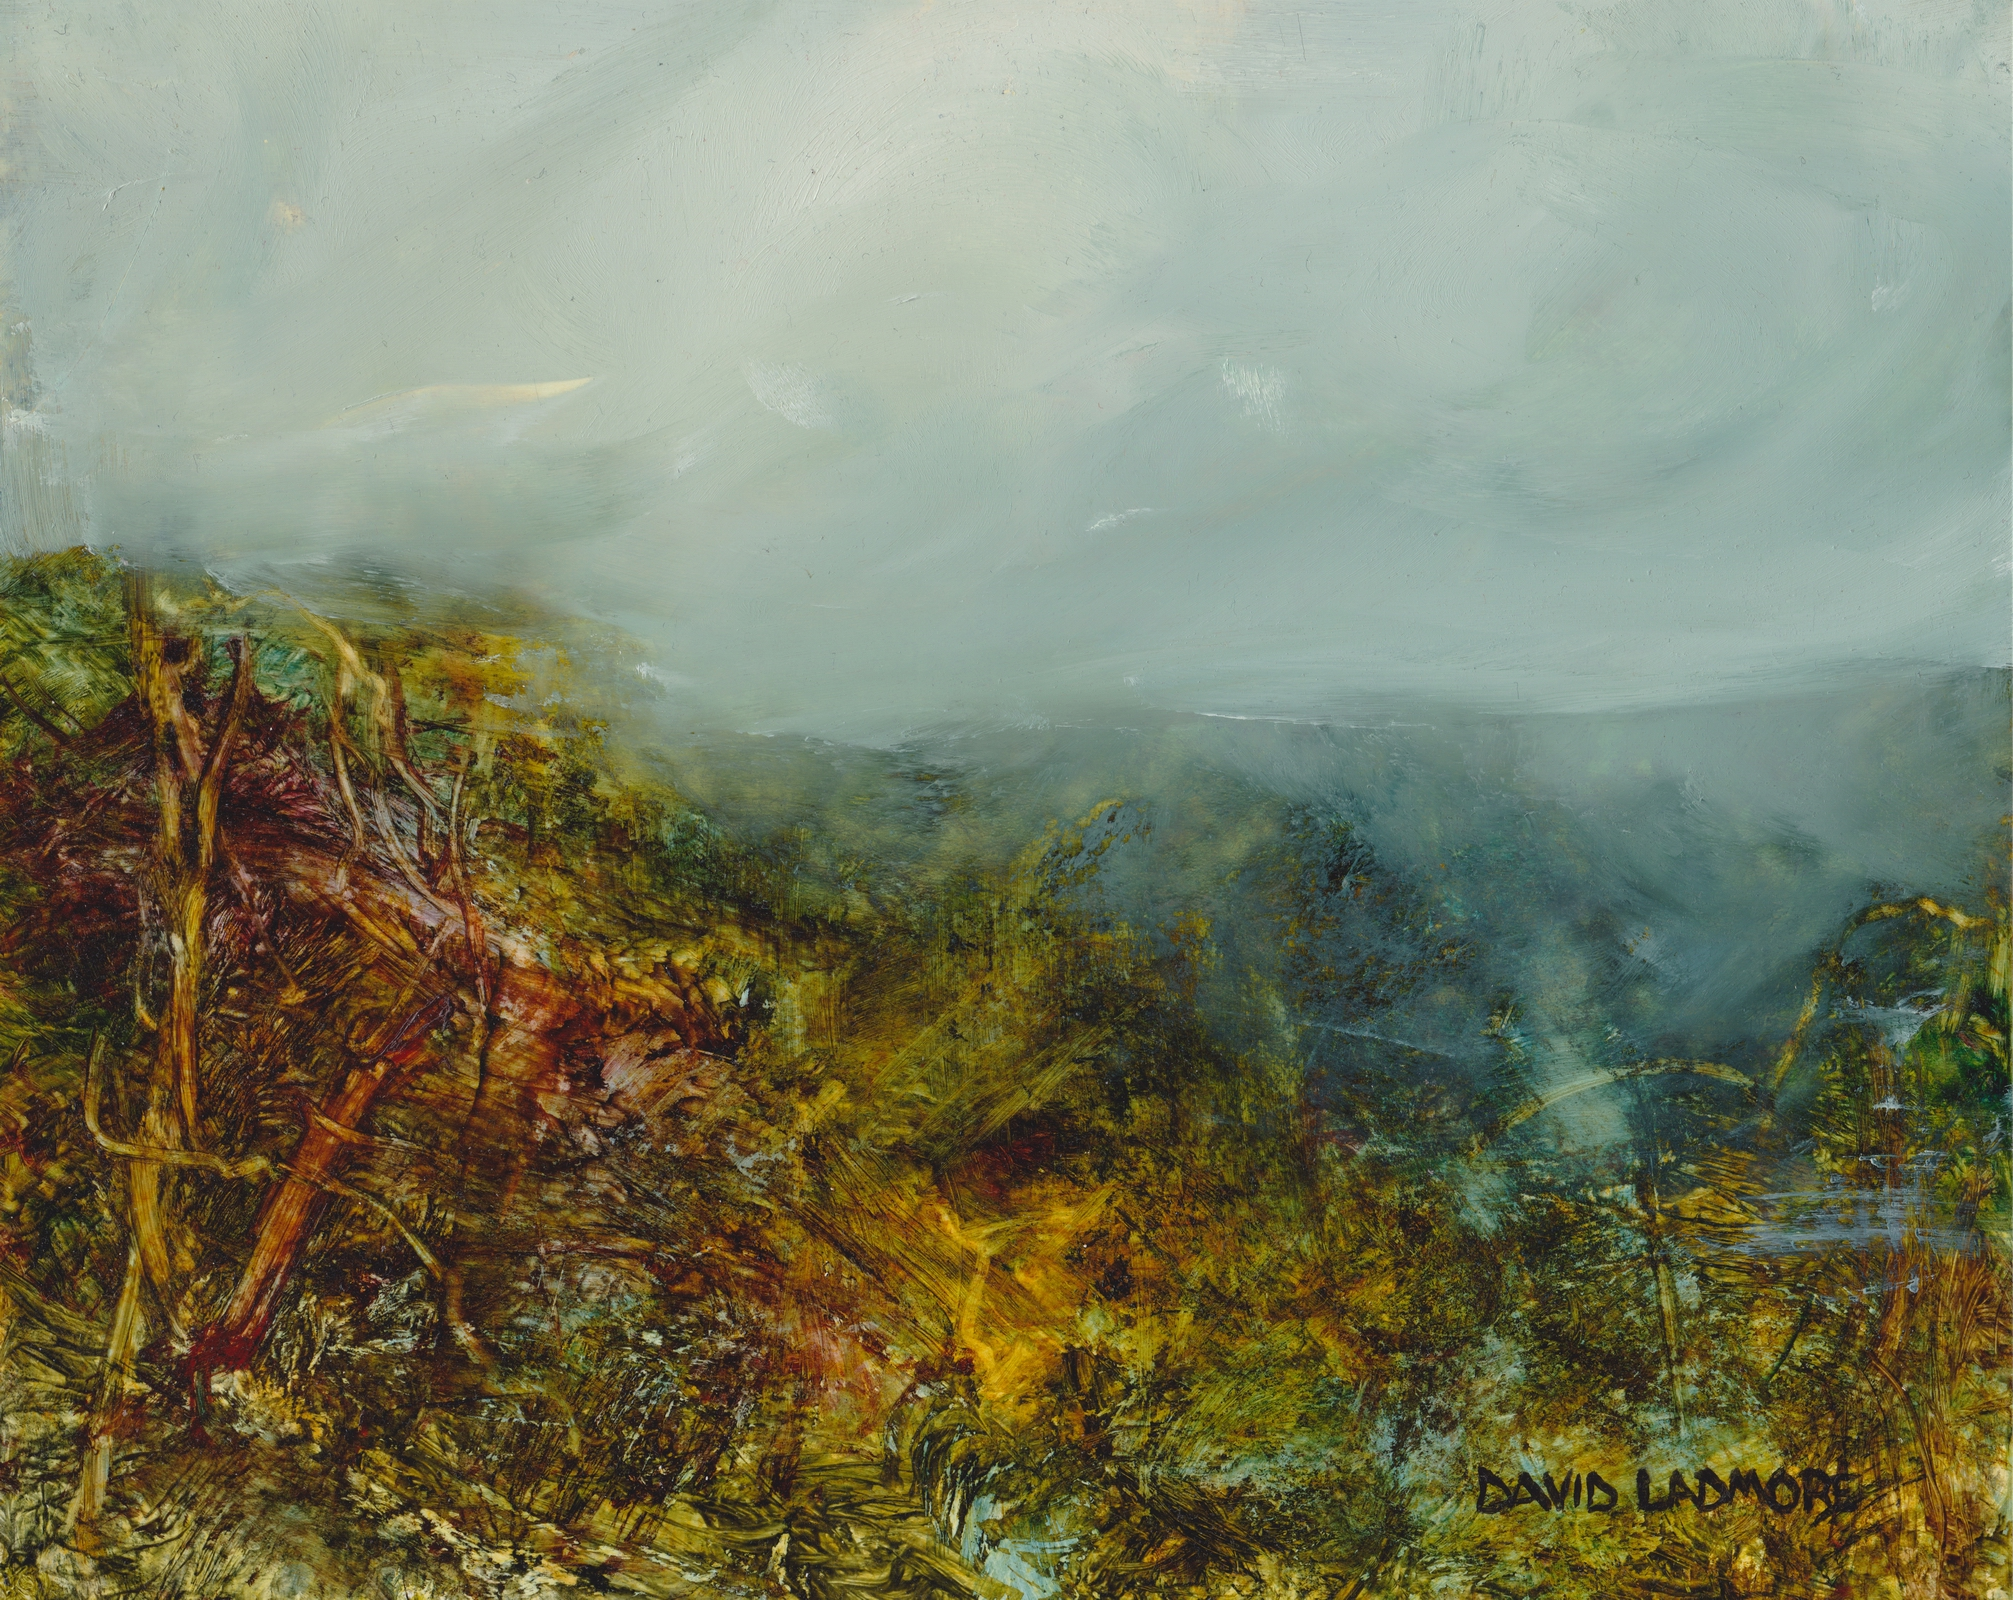 image of landscape oil painting Moorland 40 by David Ladmore